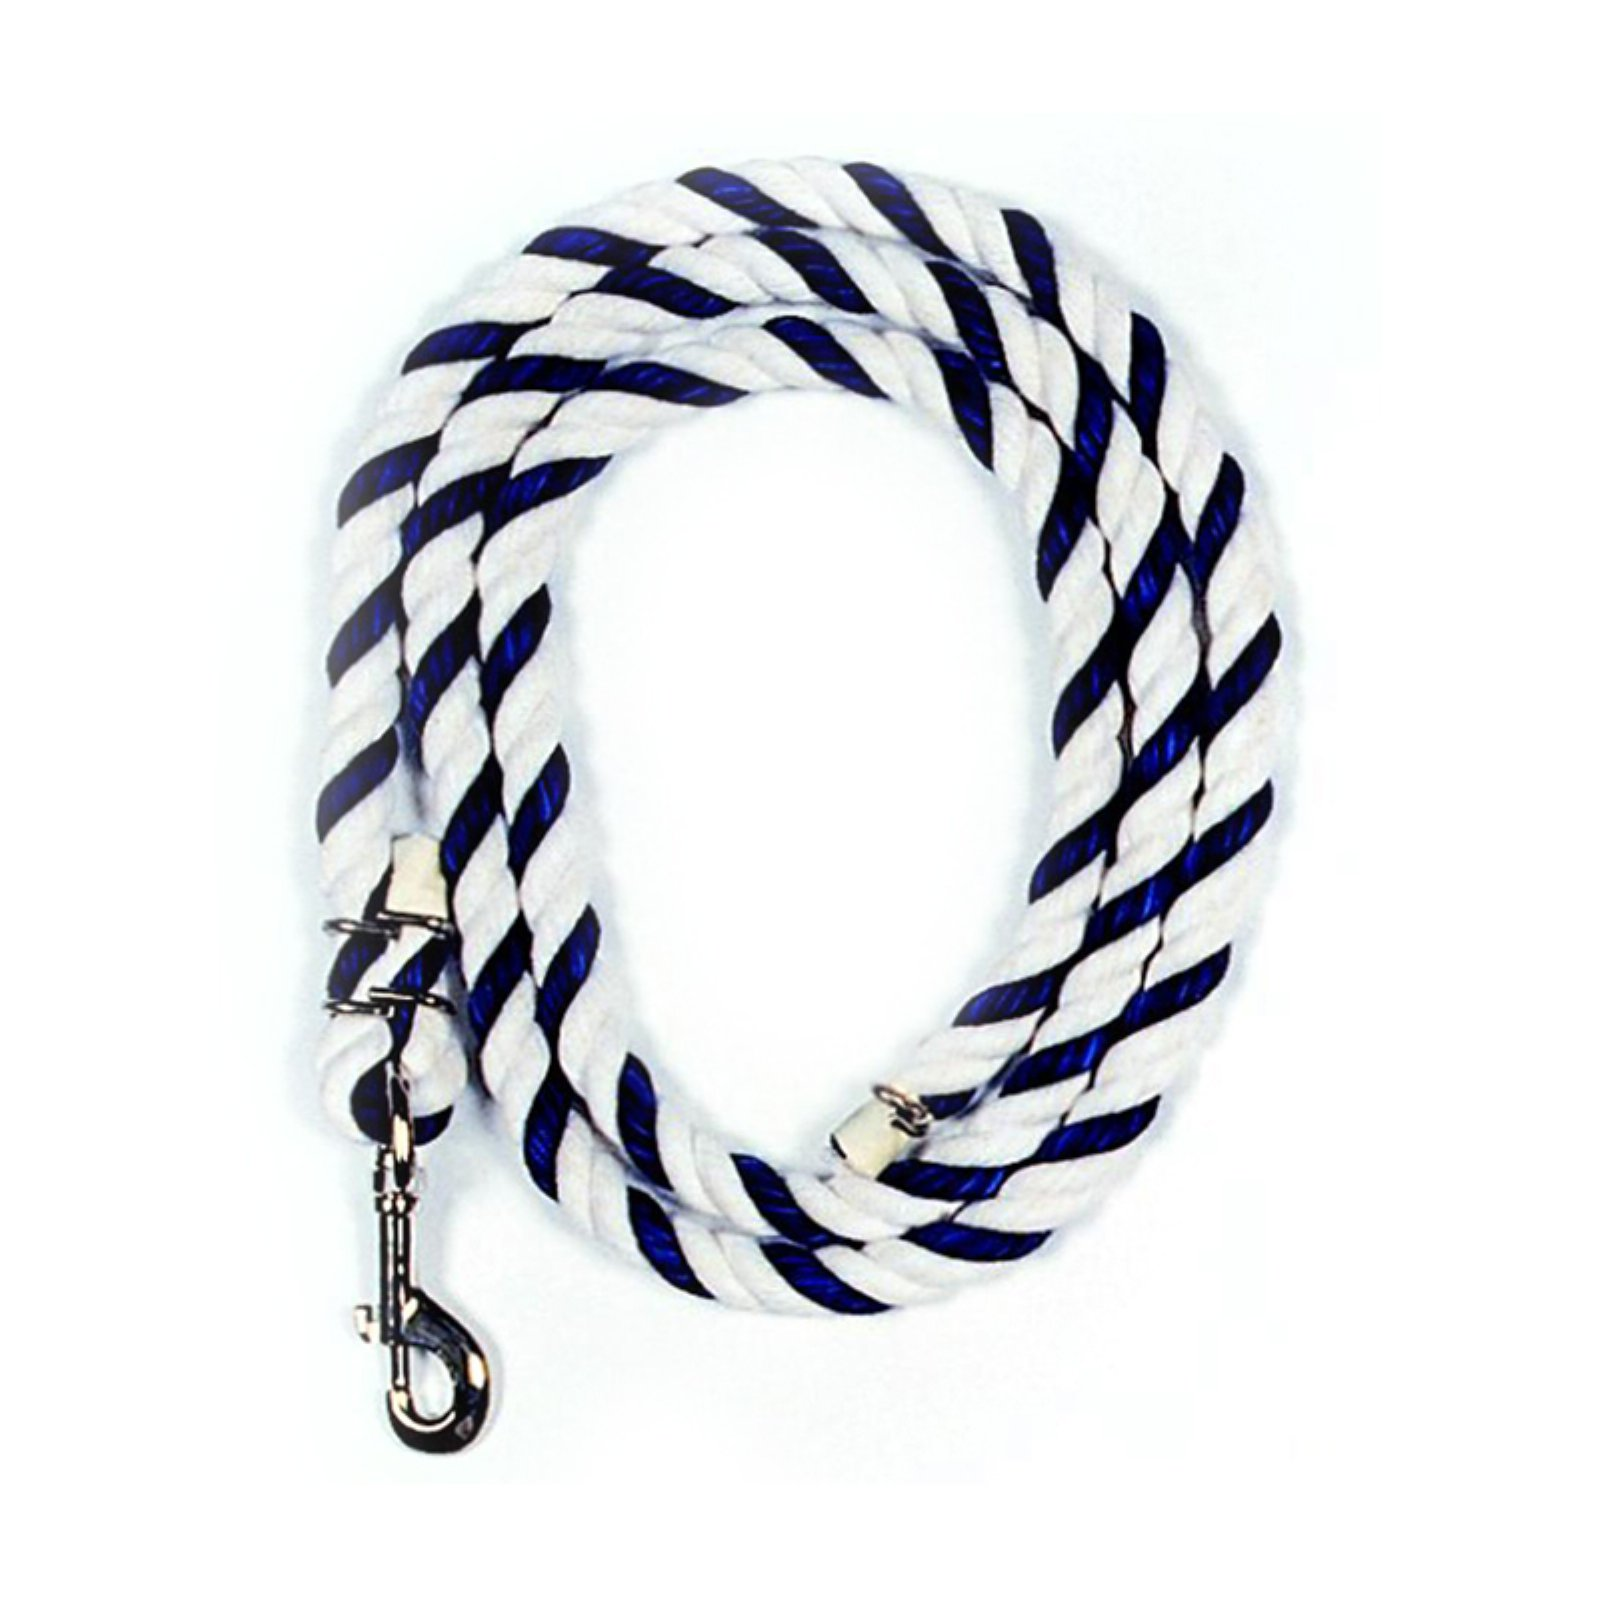 Beiler S Manufacturing 7.5 ft. Rope Cotton Lead with Chain